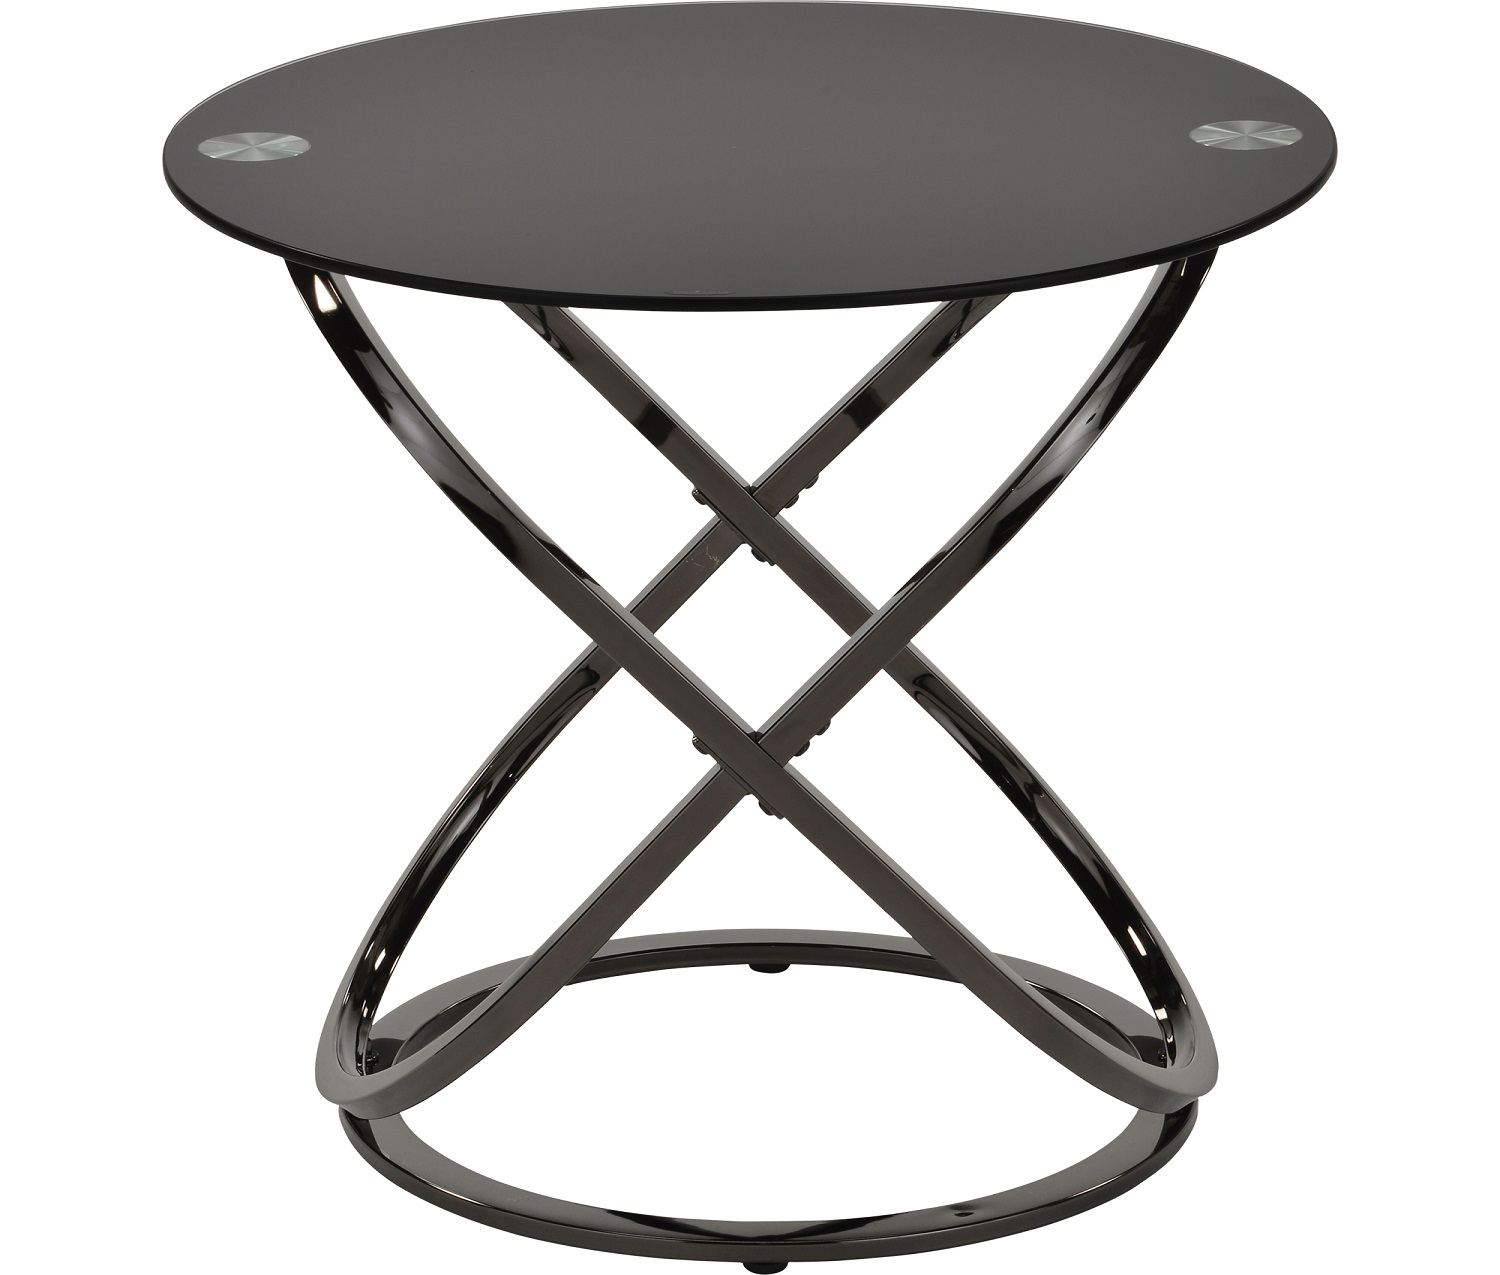 CARLYN-ACCENT TABLE-BLACK NICKEL, 841173029319, Console Table by Midha Furniture to Brampton, Mississauga, Etobicoke, Toronto, Scraborough, Caledon, Oakville, Markham, Ajax, Pickering, Oshawa, Richmondhill, Kitchener, Hamilton and GTA area